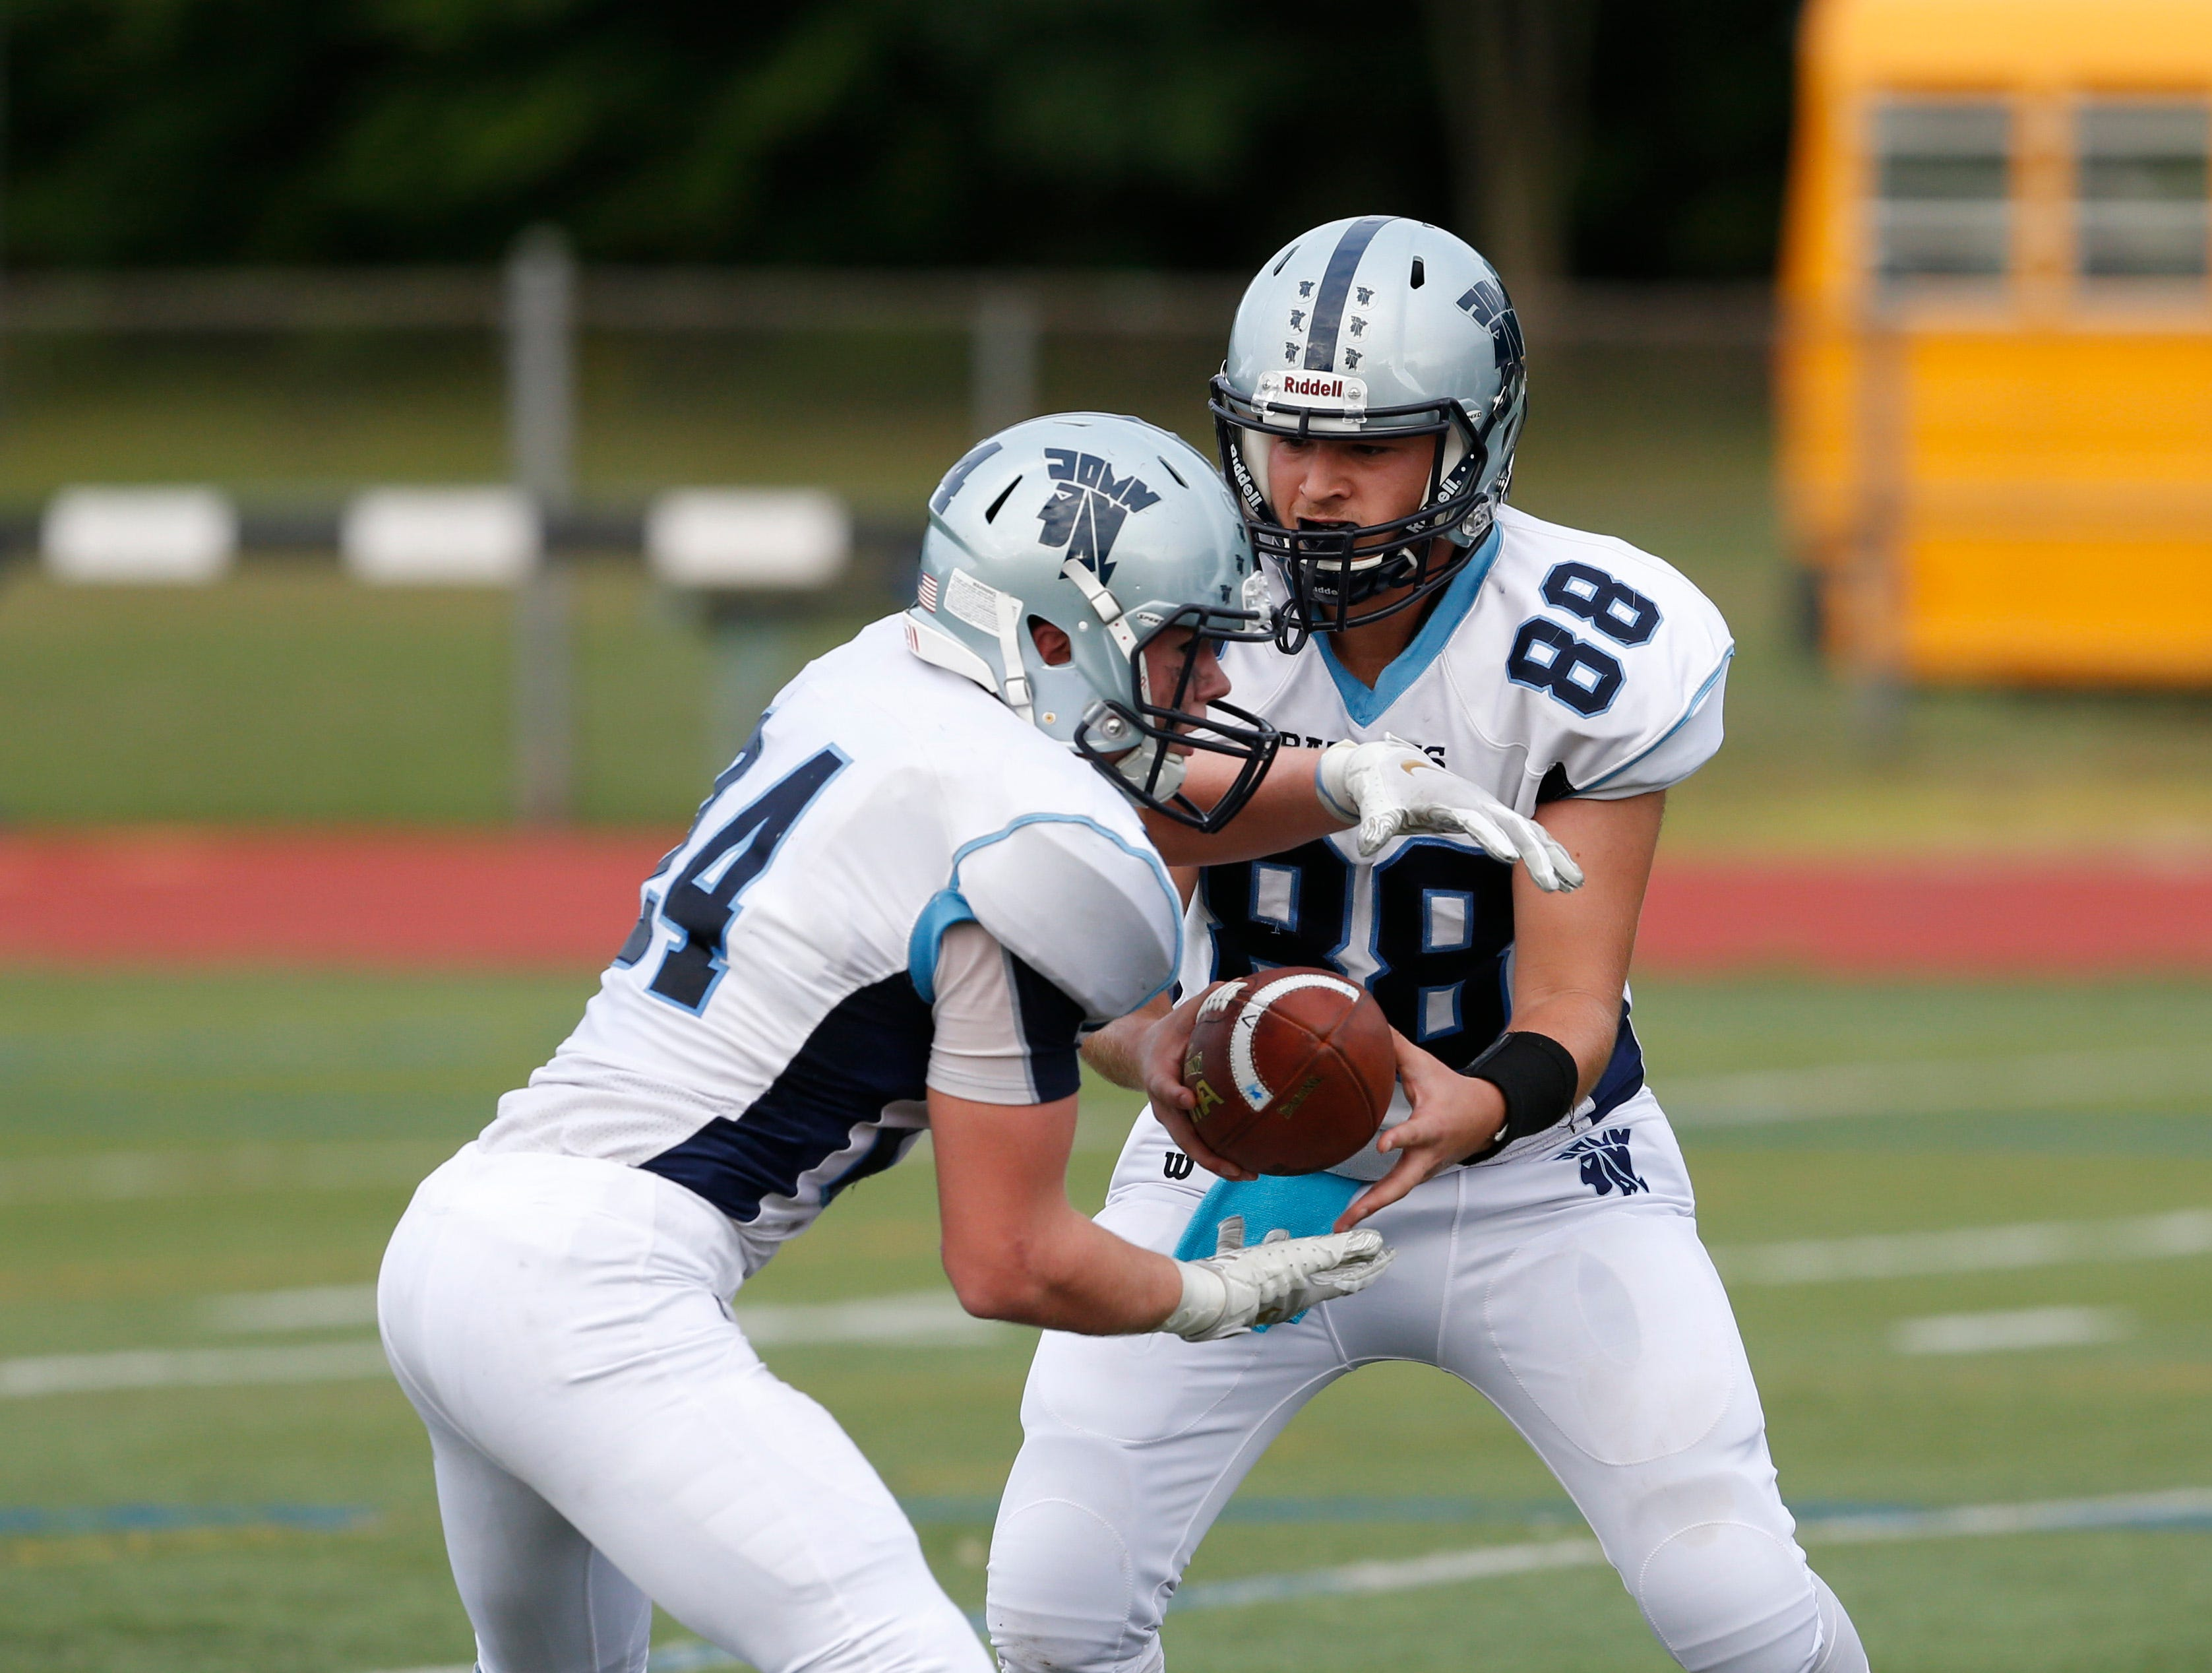 John Jay's Joseph Melici hands off the ball to Evan Mullaly during Friday's game versus Arlington in Freedom Plains Sept 14, 2018.